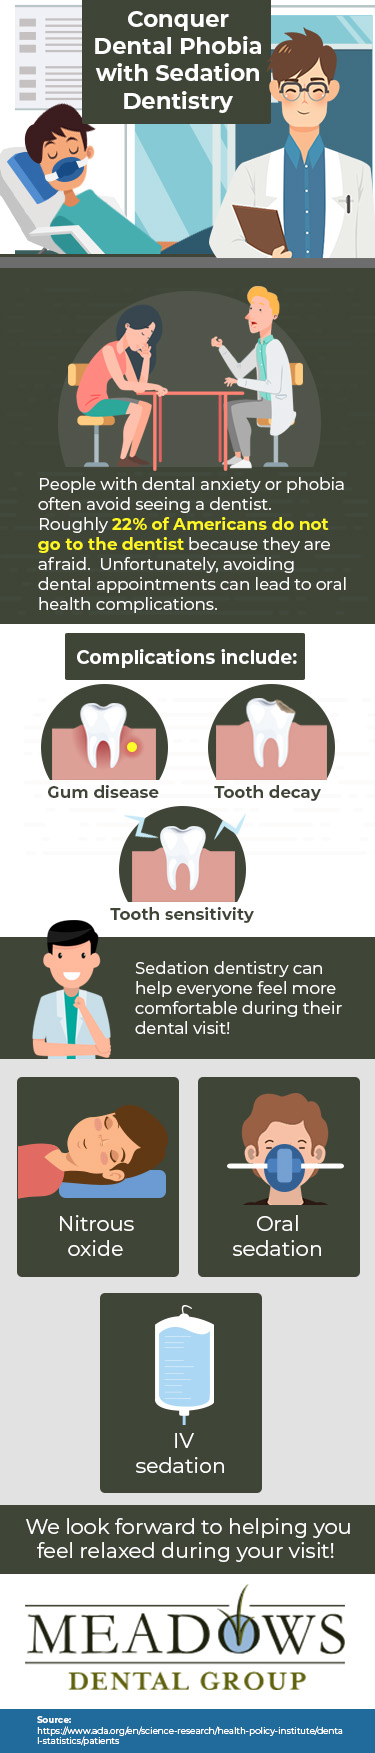 Infographic about safe and comfortable sedation dentistry at Meadows Dental Group